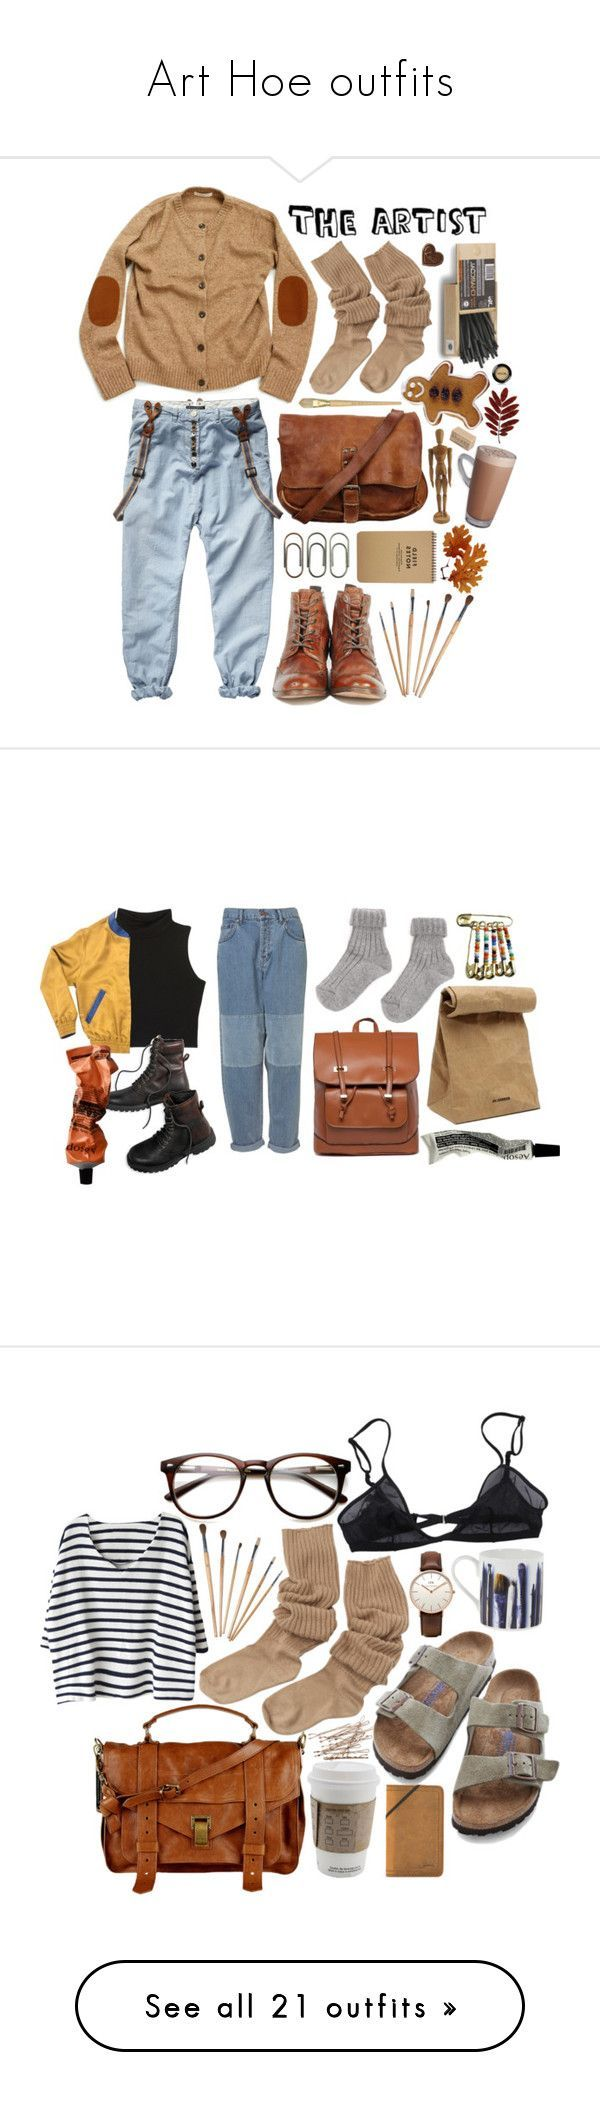 """""""Art Hoe outfits"""" by brittney-crowe ❤ liked on Polyvore featuring H by Hudson, Clips, Tourne, Stila, ootd, American Eagle Outfitters, Aesop, Jil Sander, Daniel Wellington and Bllack by Noir"""